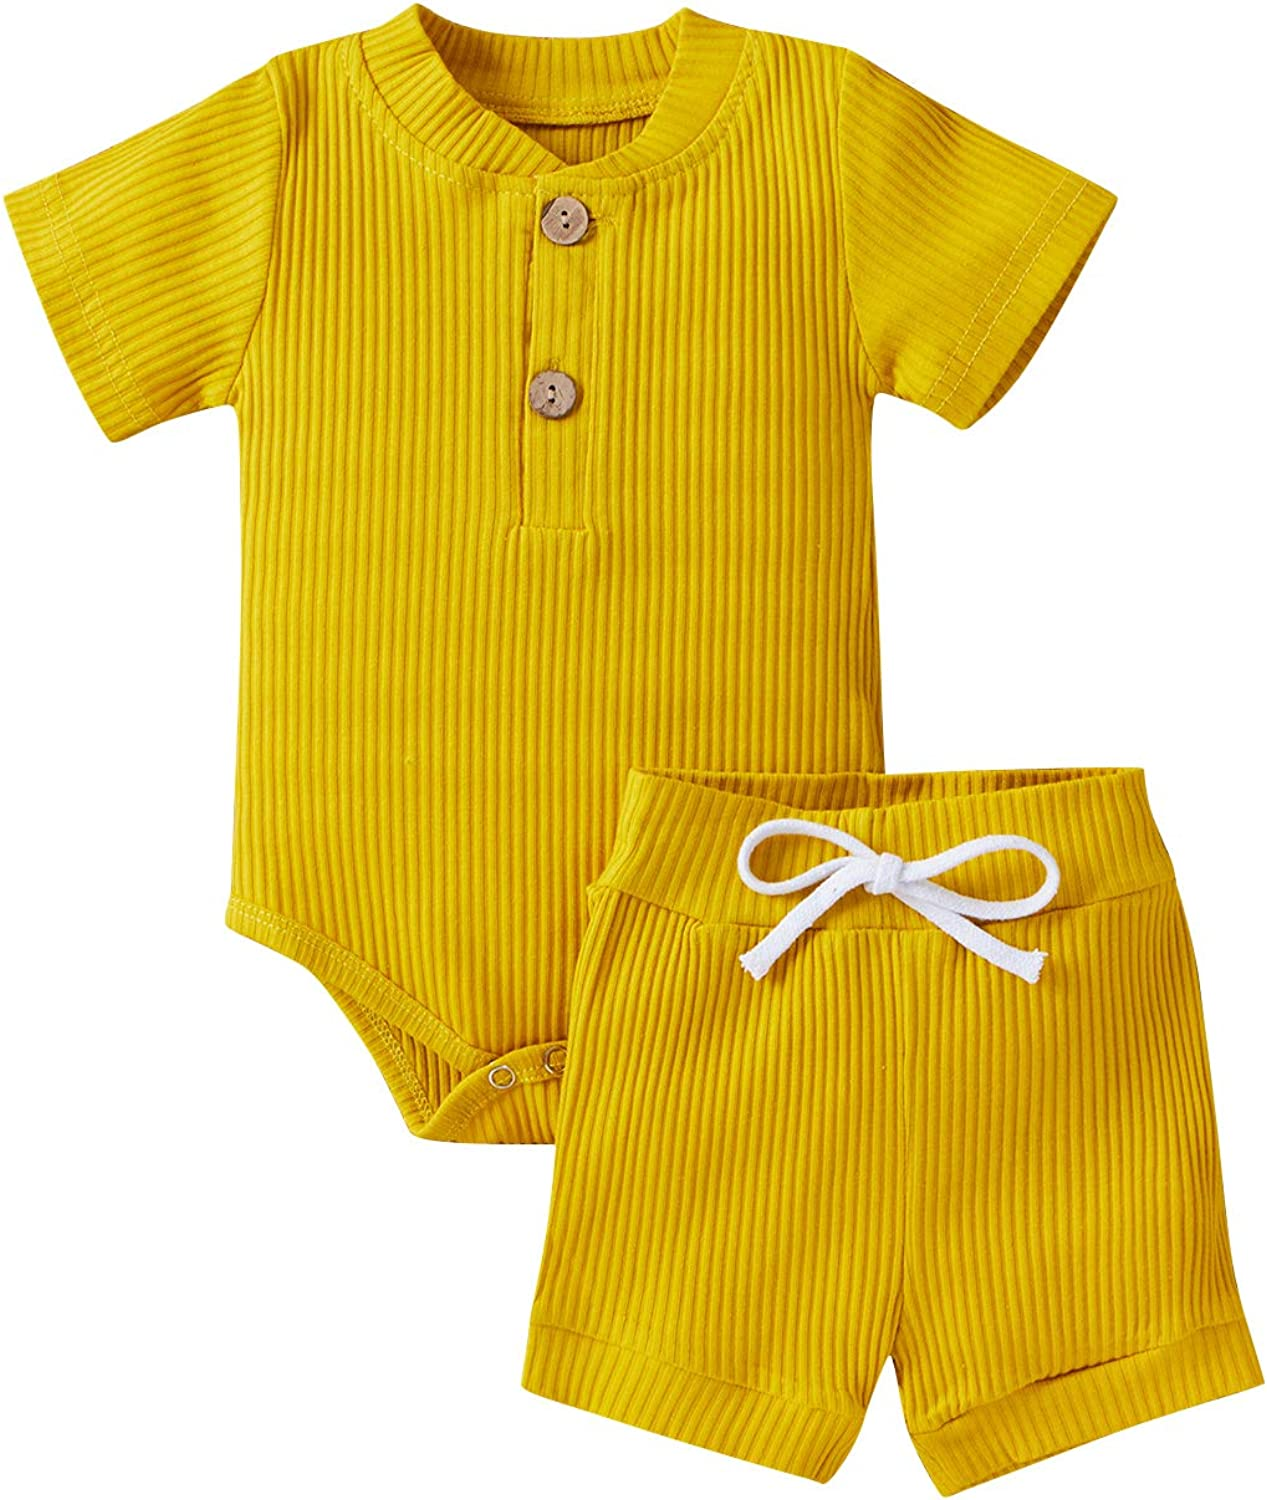 QWEP Summer Newborn Baby Boy Girl Ribbed Outfits Sleeveless/Short Sleeve Button Romper Bodysuit and Shorts Clothes 2 PCS